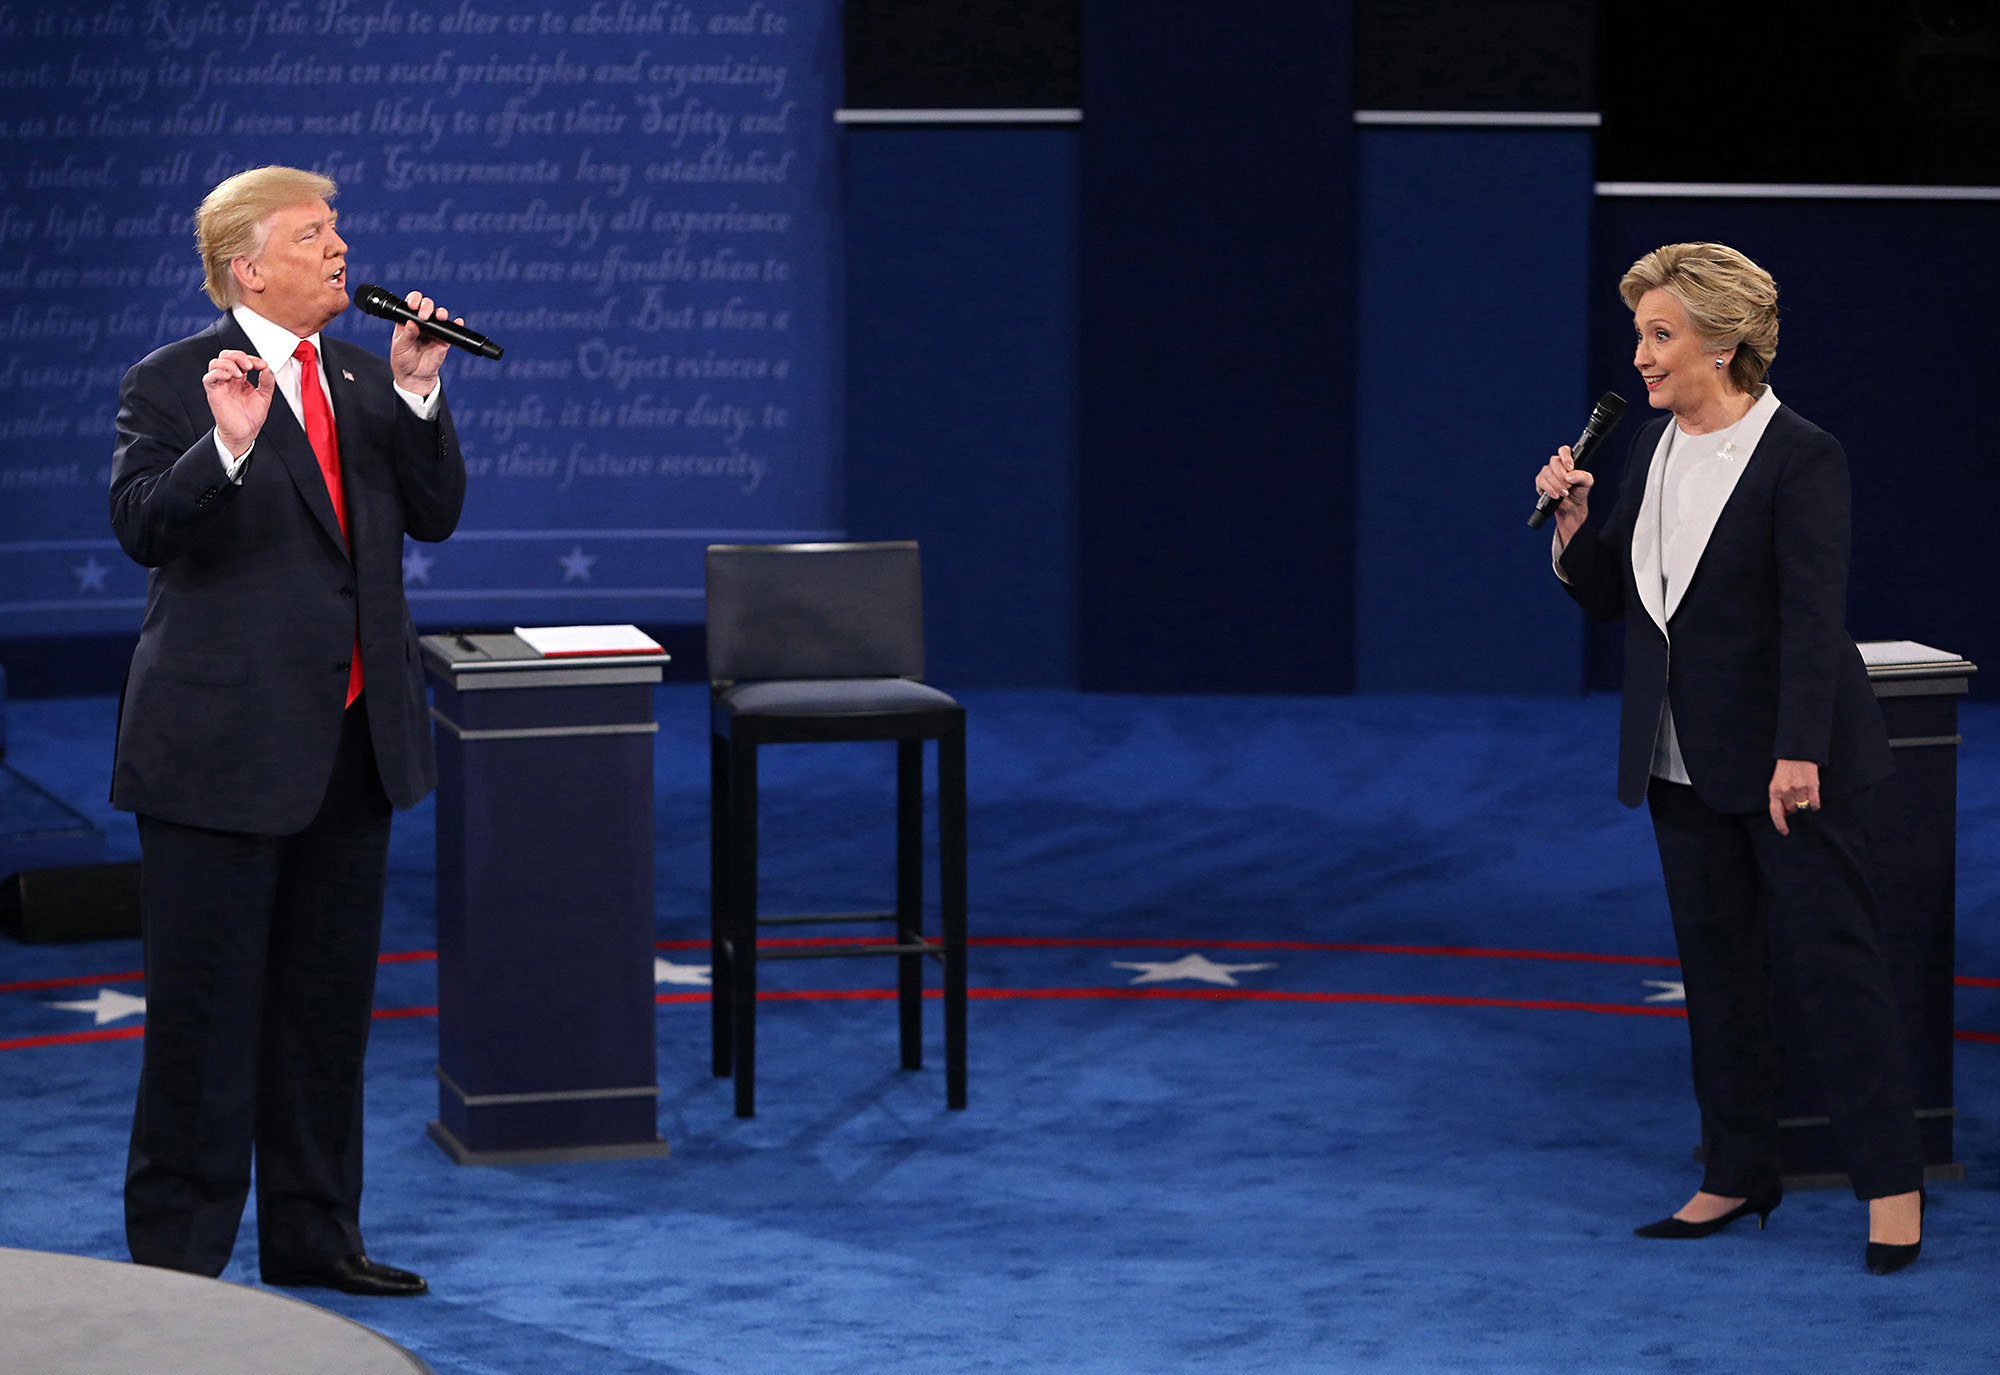 Donald Trump and Hilary Clinton on the debate stage